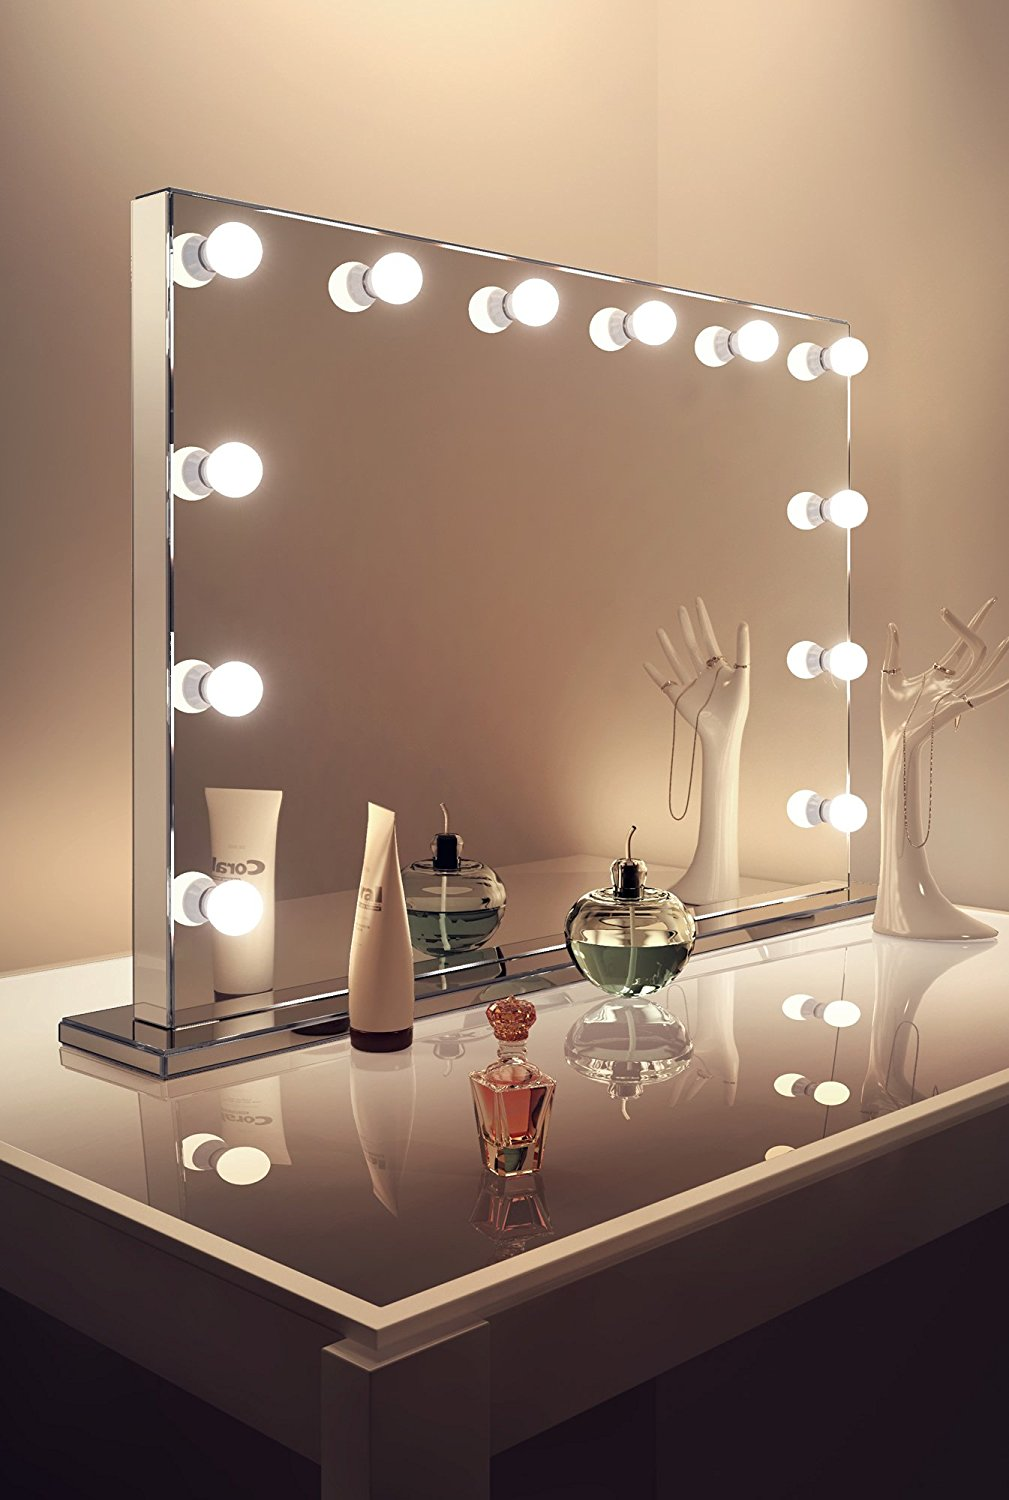 Hollywood Vanity Mirror with Lights | Makeup Vanity Mirror | Lighted Vanity Makeup Mirror